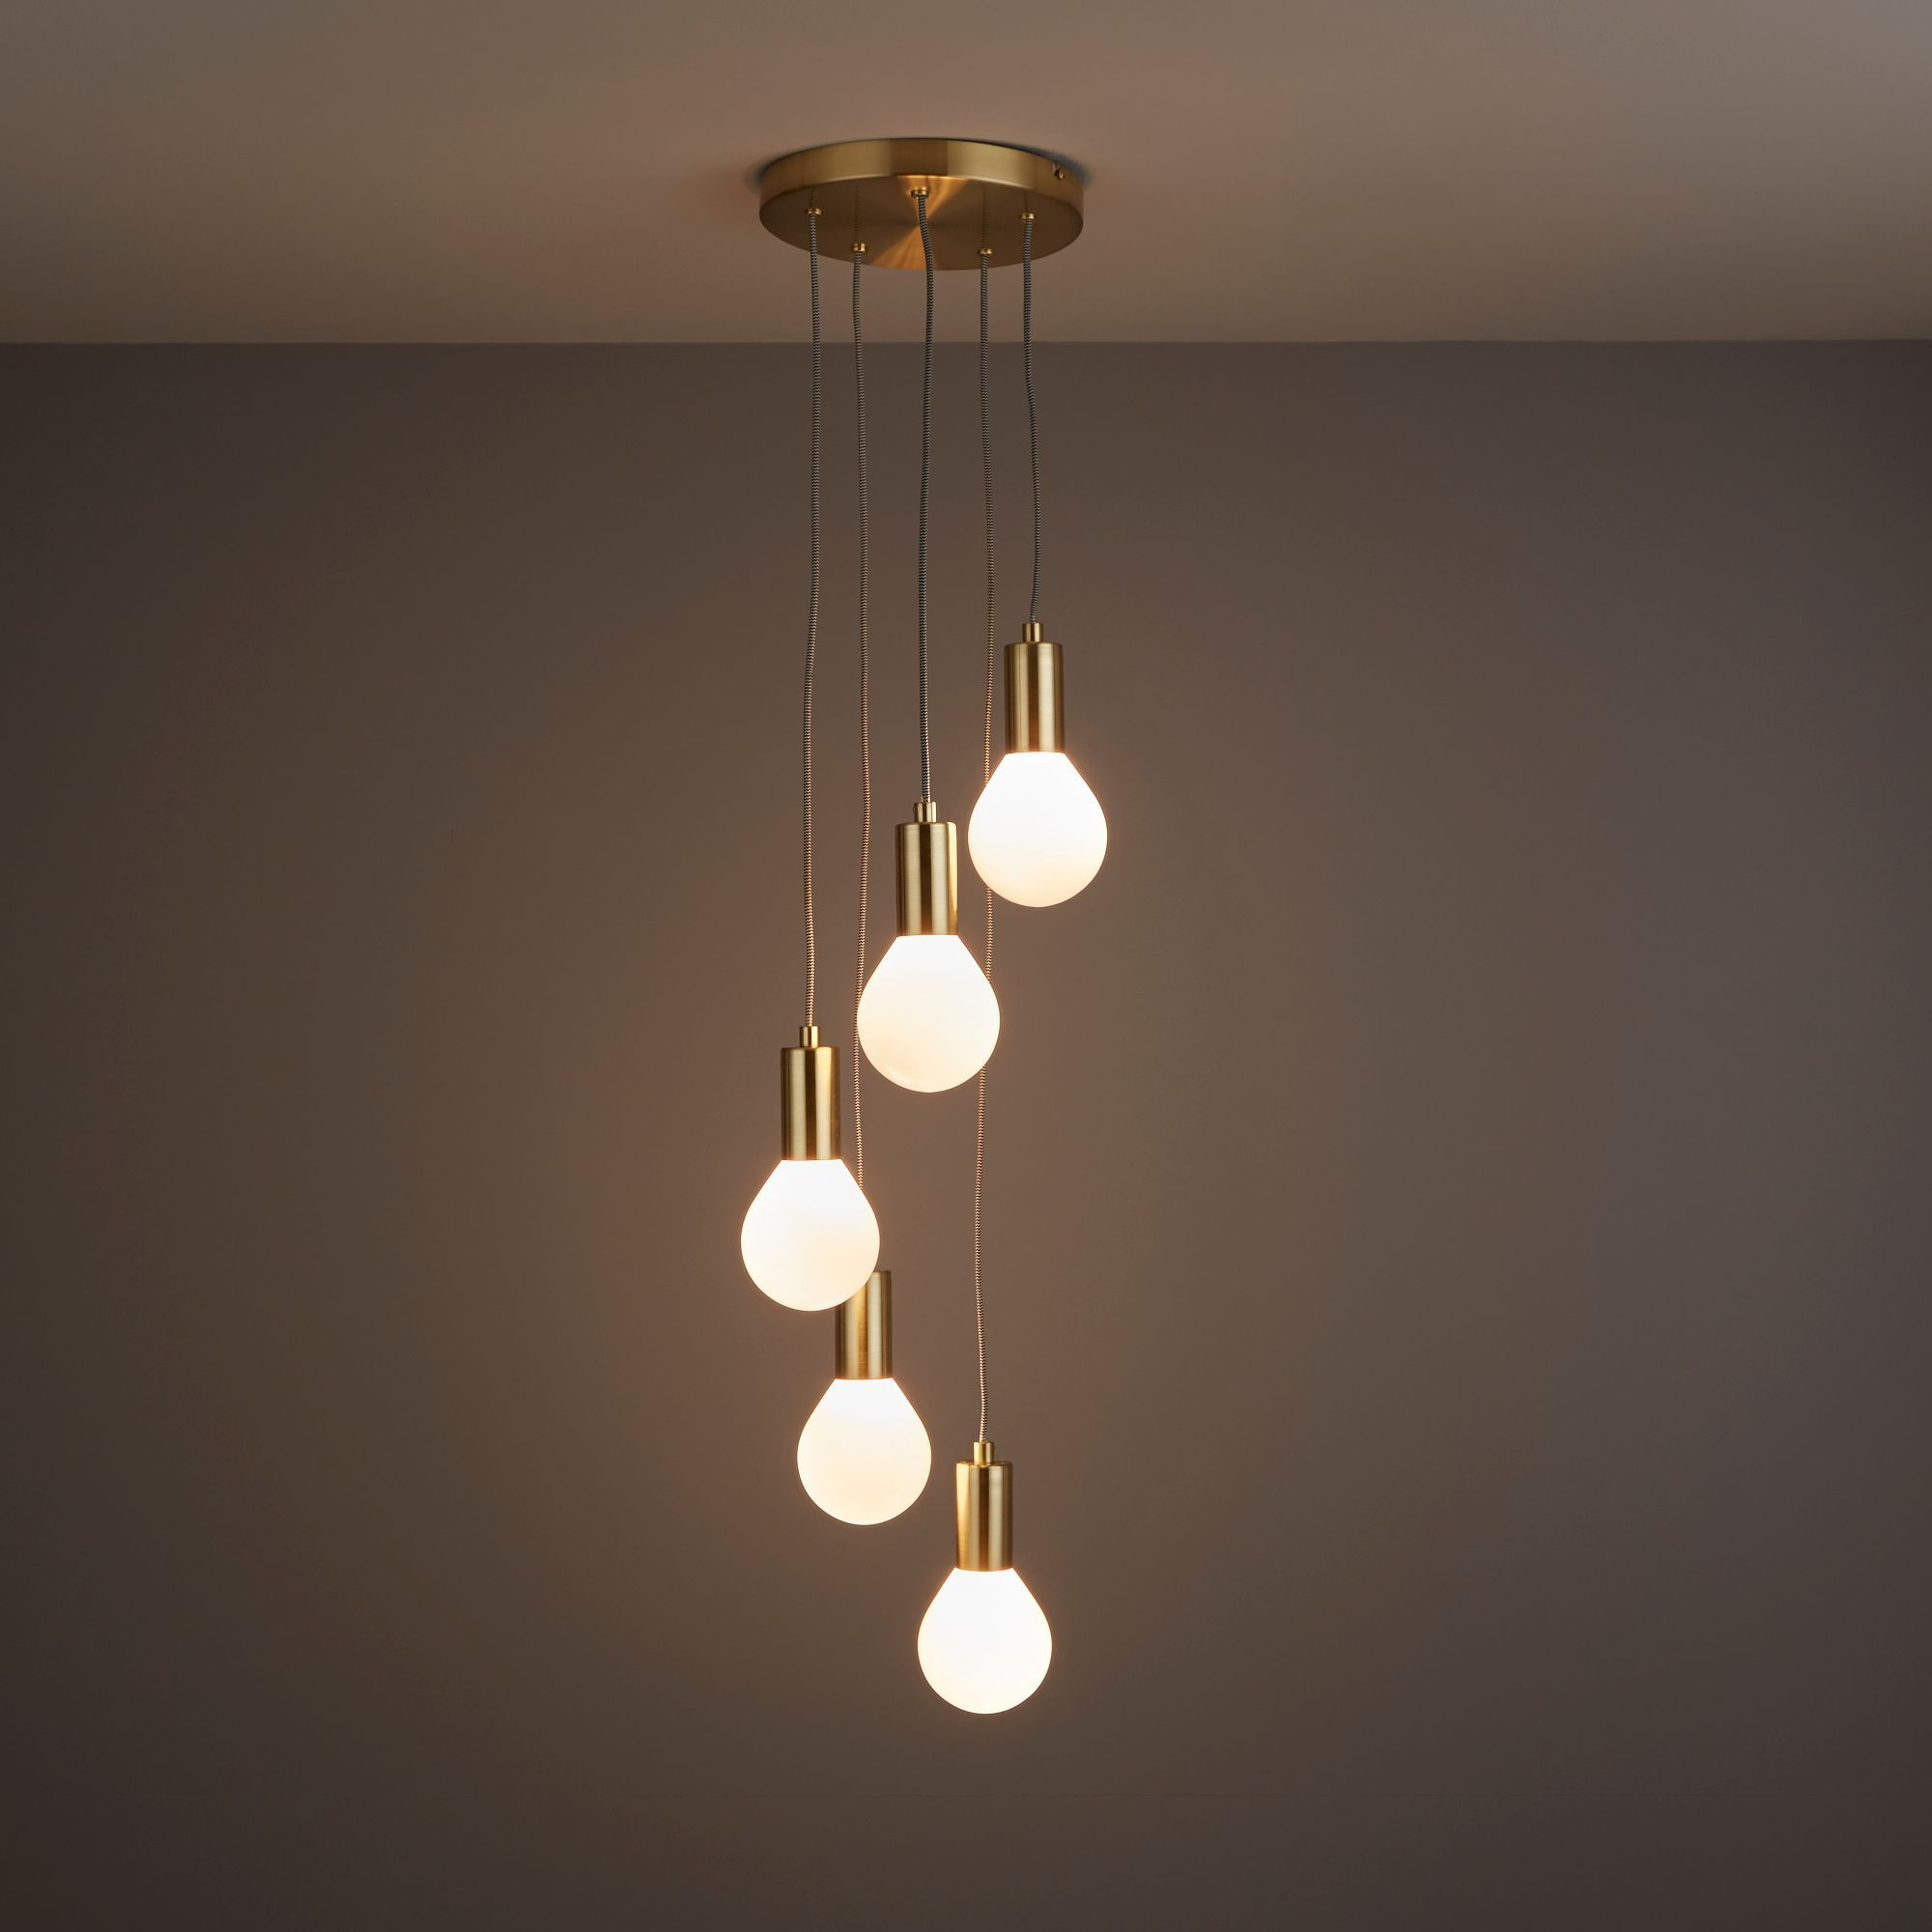 Channing Modern Gold Satin Brushed 5 Lamp Ceiling Light